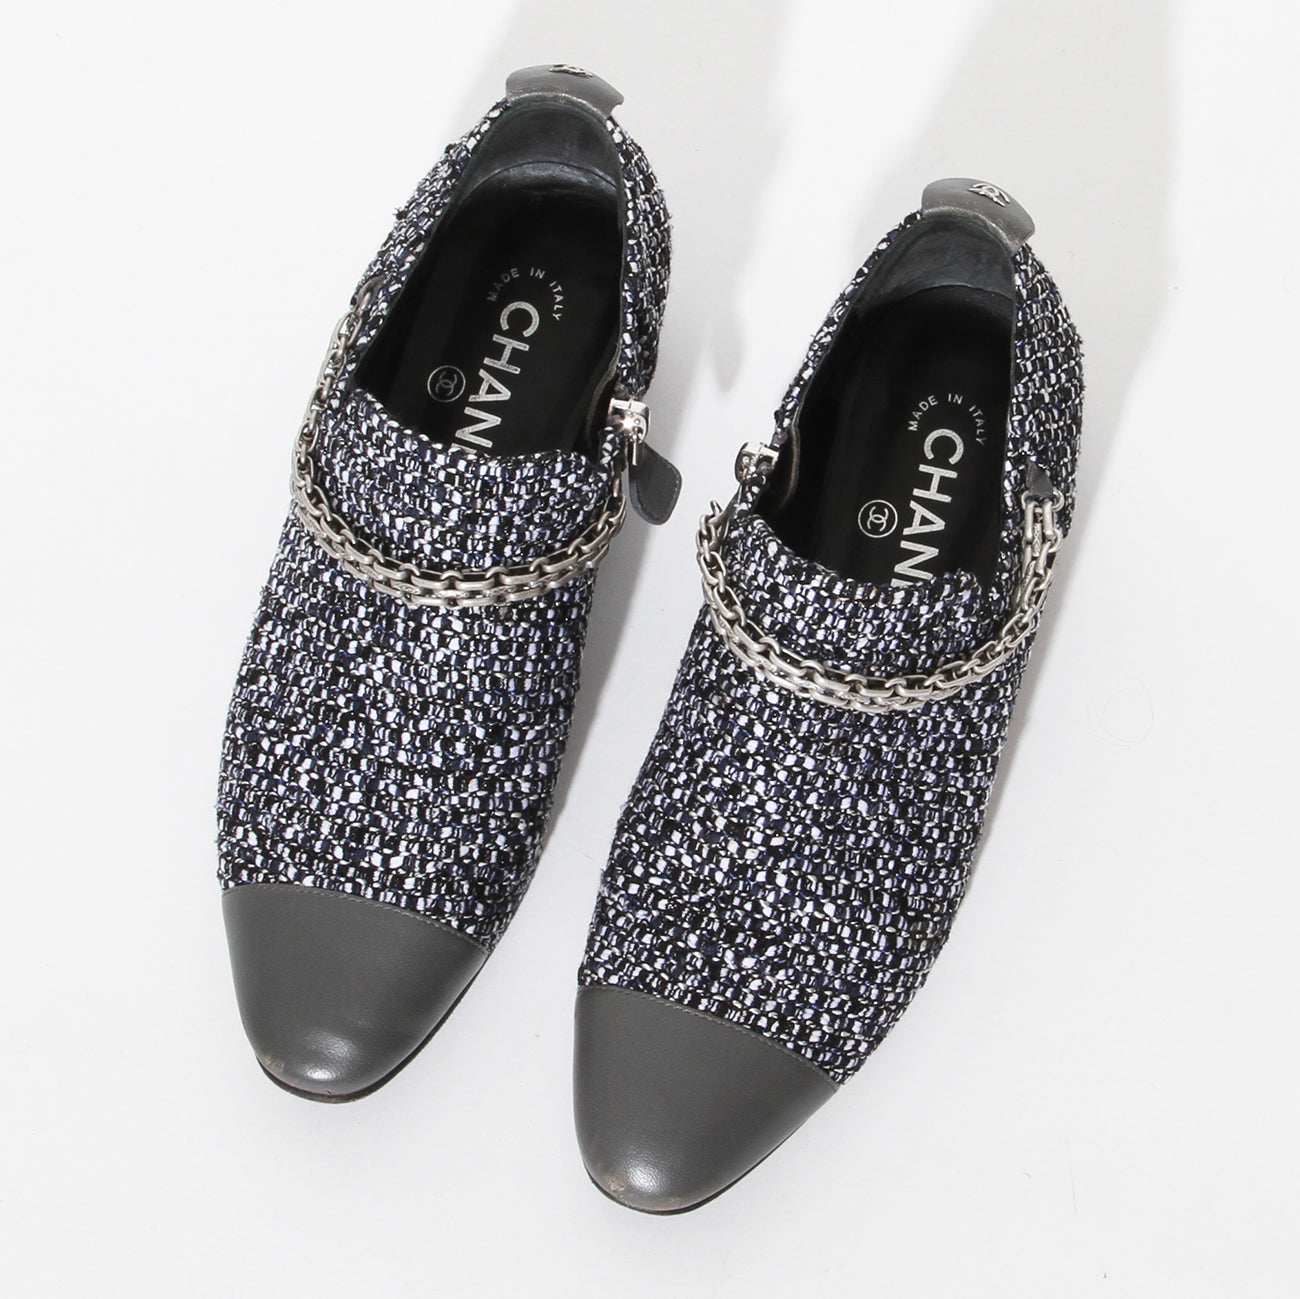 Chanel Tweed Chain Loafer